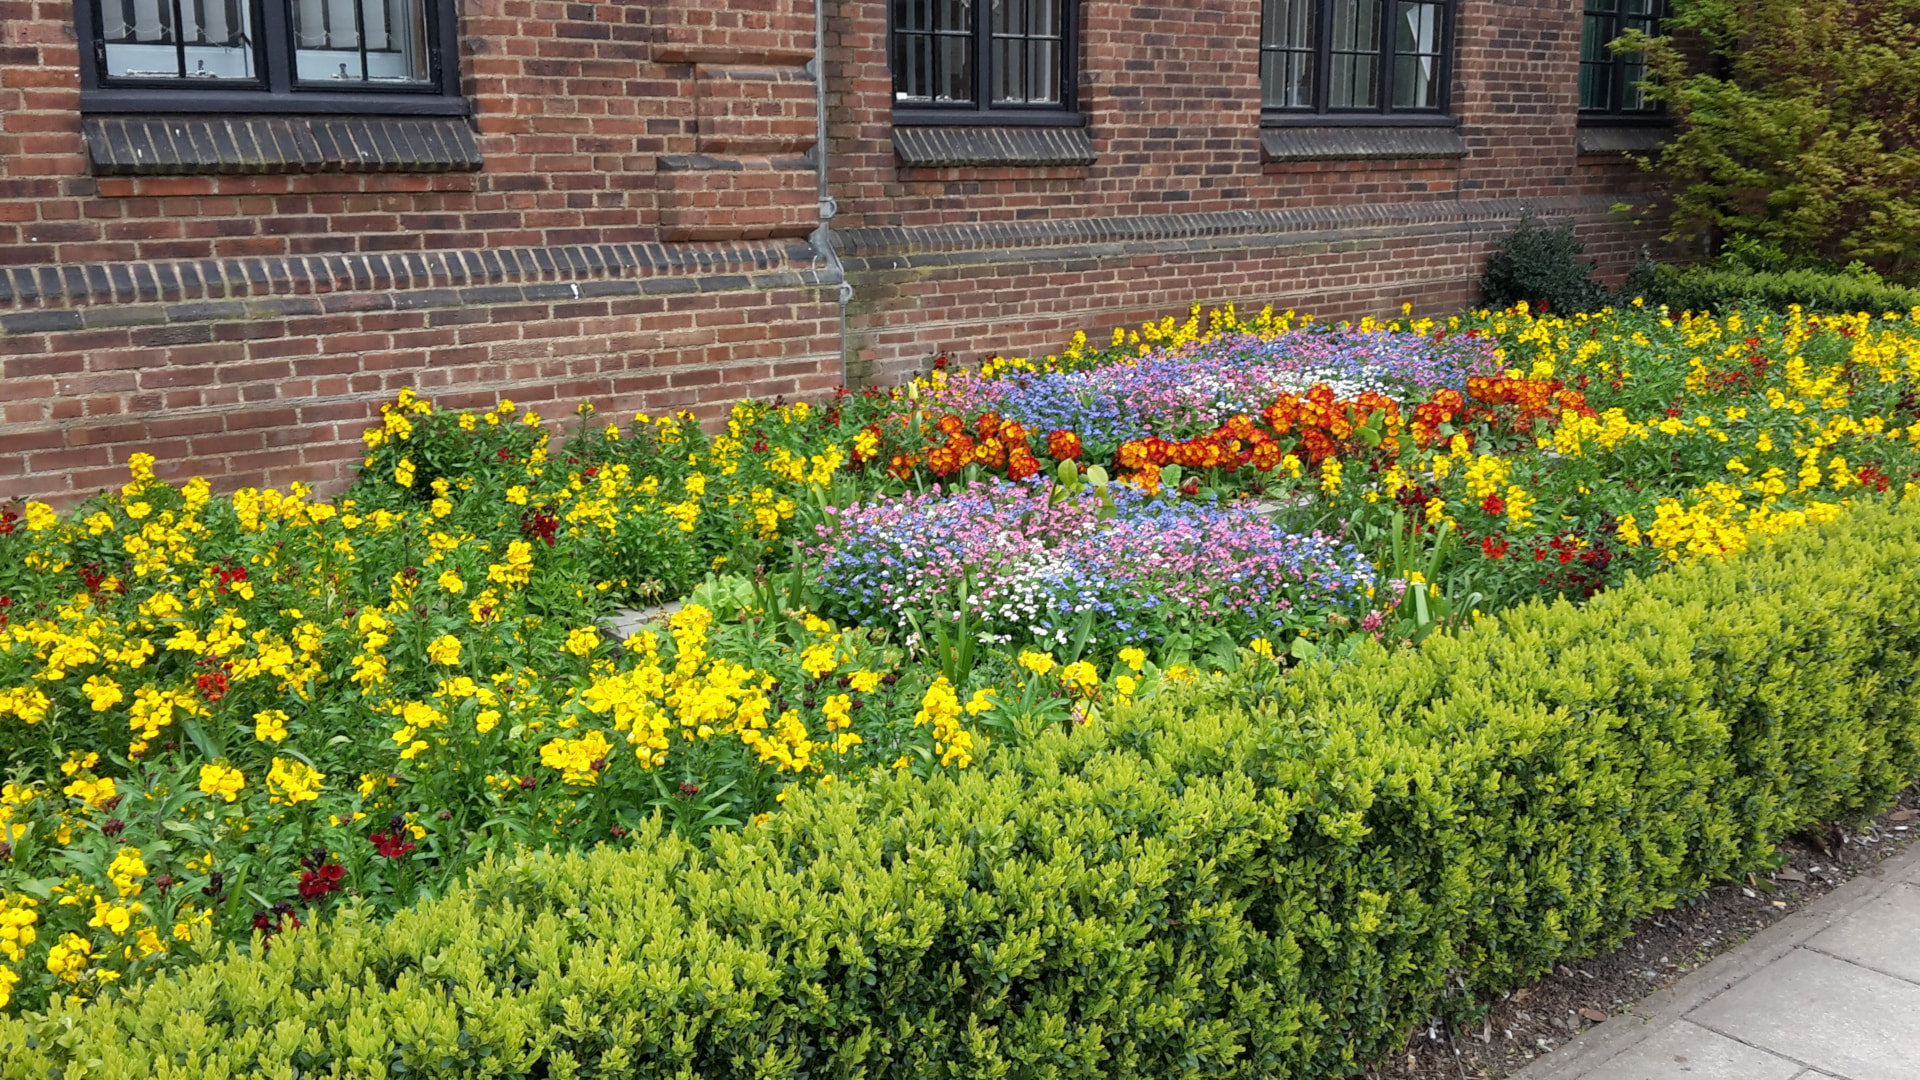 Some lovely flowers at University last year.